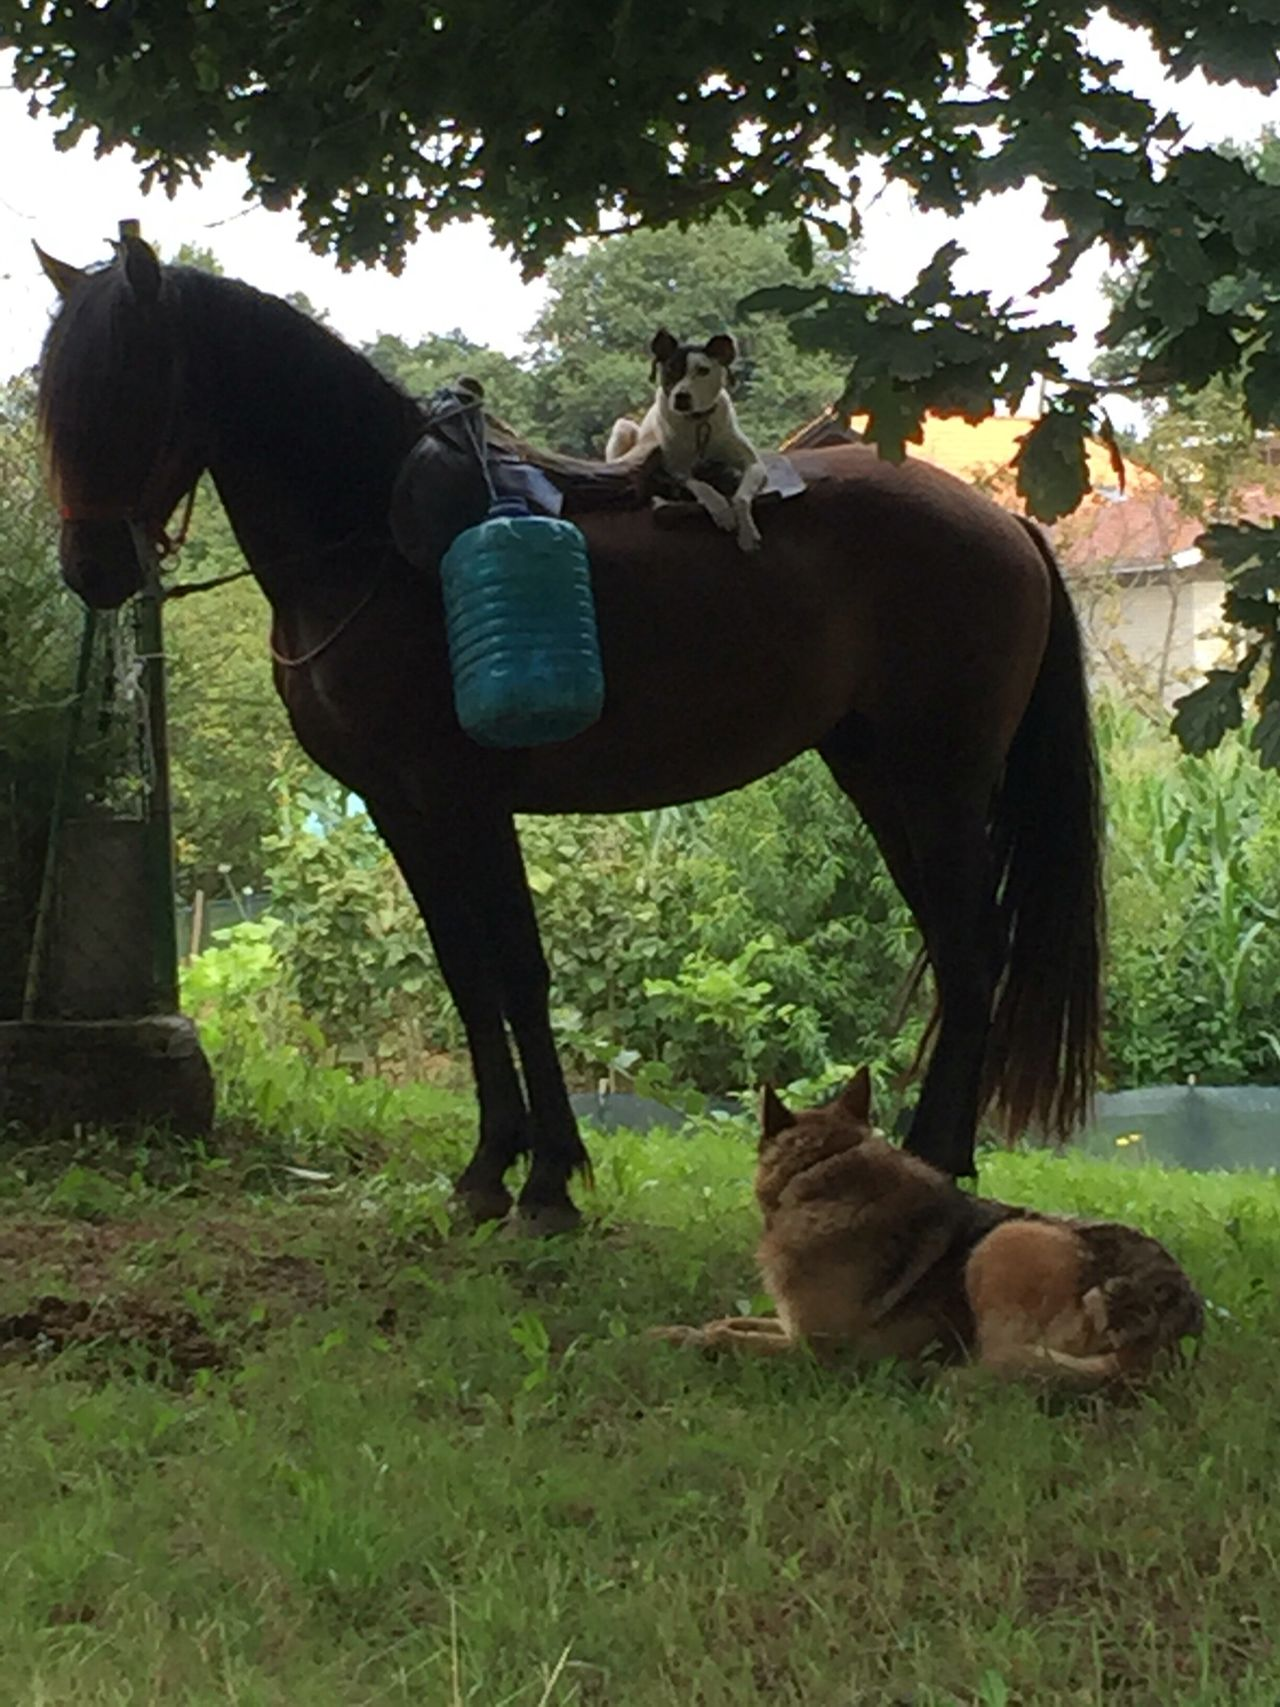 Mieres Asturias España SPAIN Horse Dog Animals Amazing Beautiful Good Morning Relaxing Traveling Tranquility Farm IPhoneography Iphone6